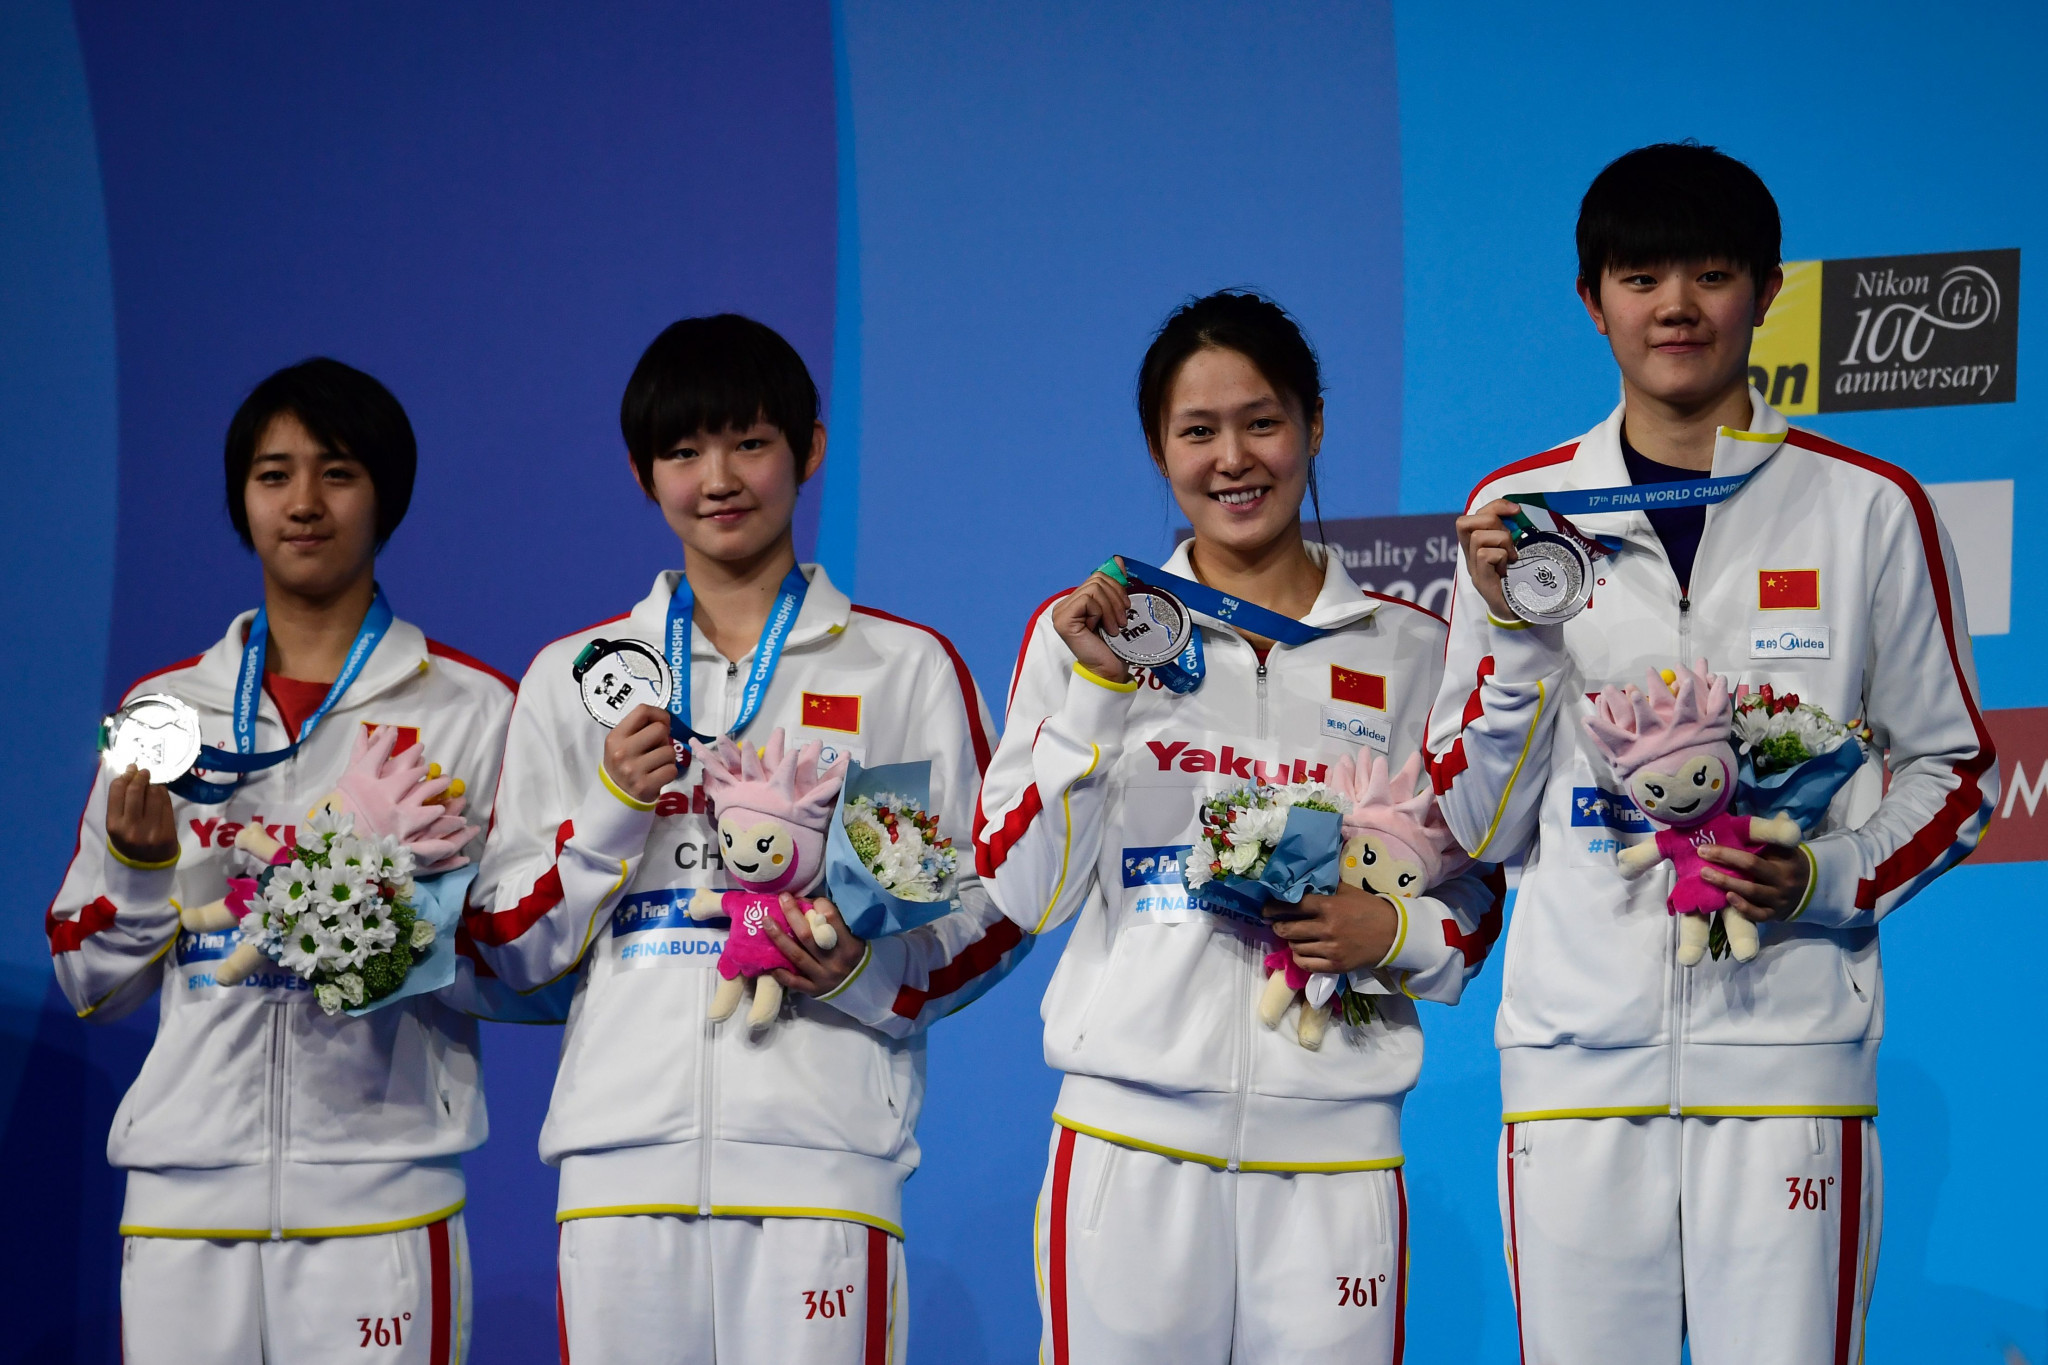 Liu Zixuan, second left, won a silver medal as part of the 4x200m freestyle relay at this year's World Championships in Budapest ©Getty Images